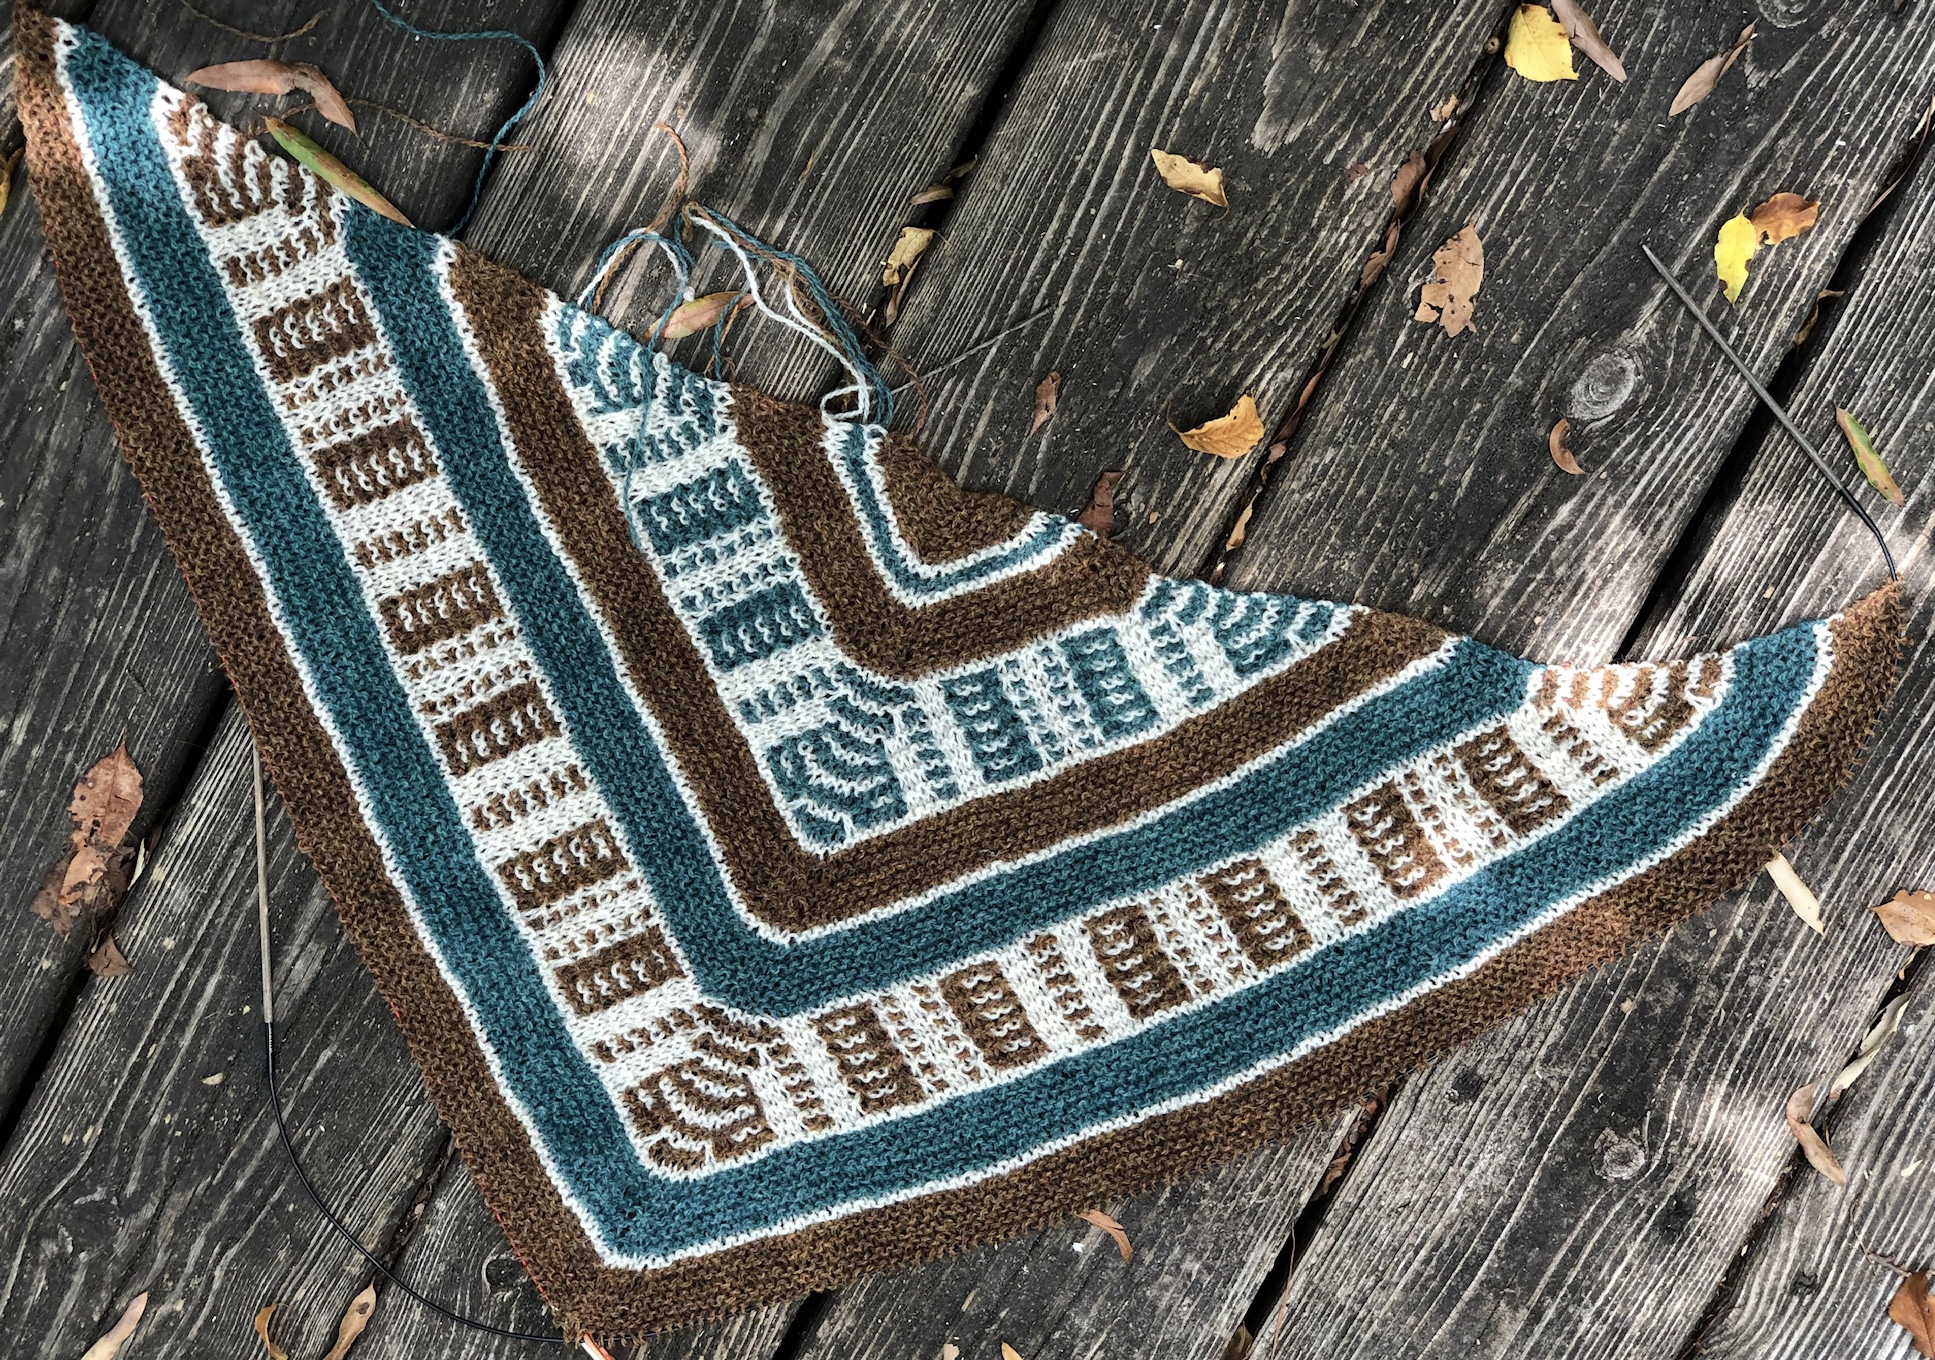 An unfinished striped triangular shawl that uses three colors to make geometric patterns.